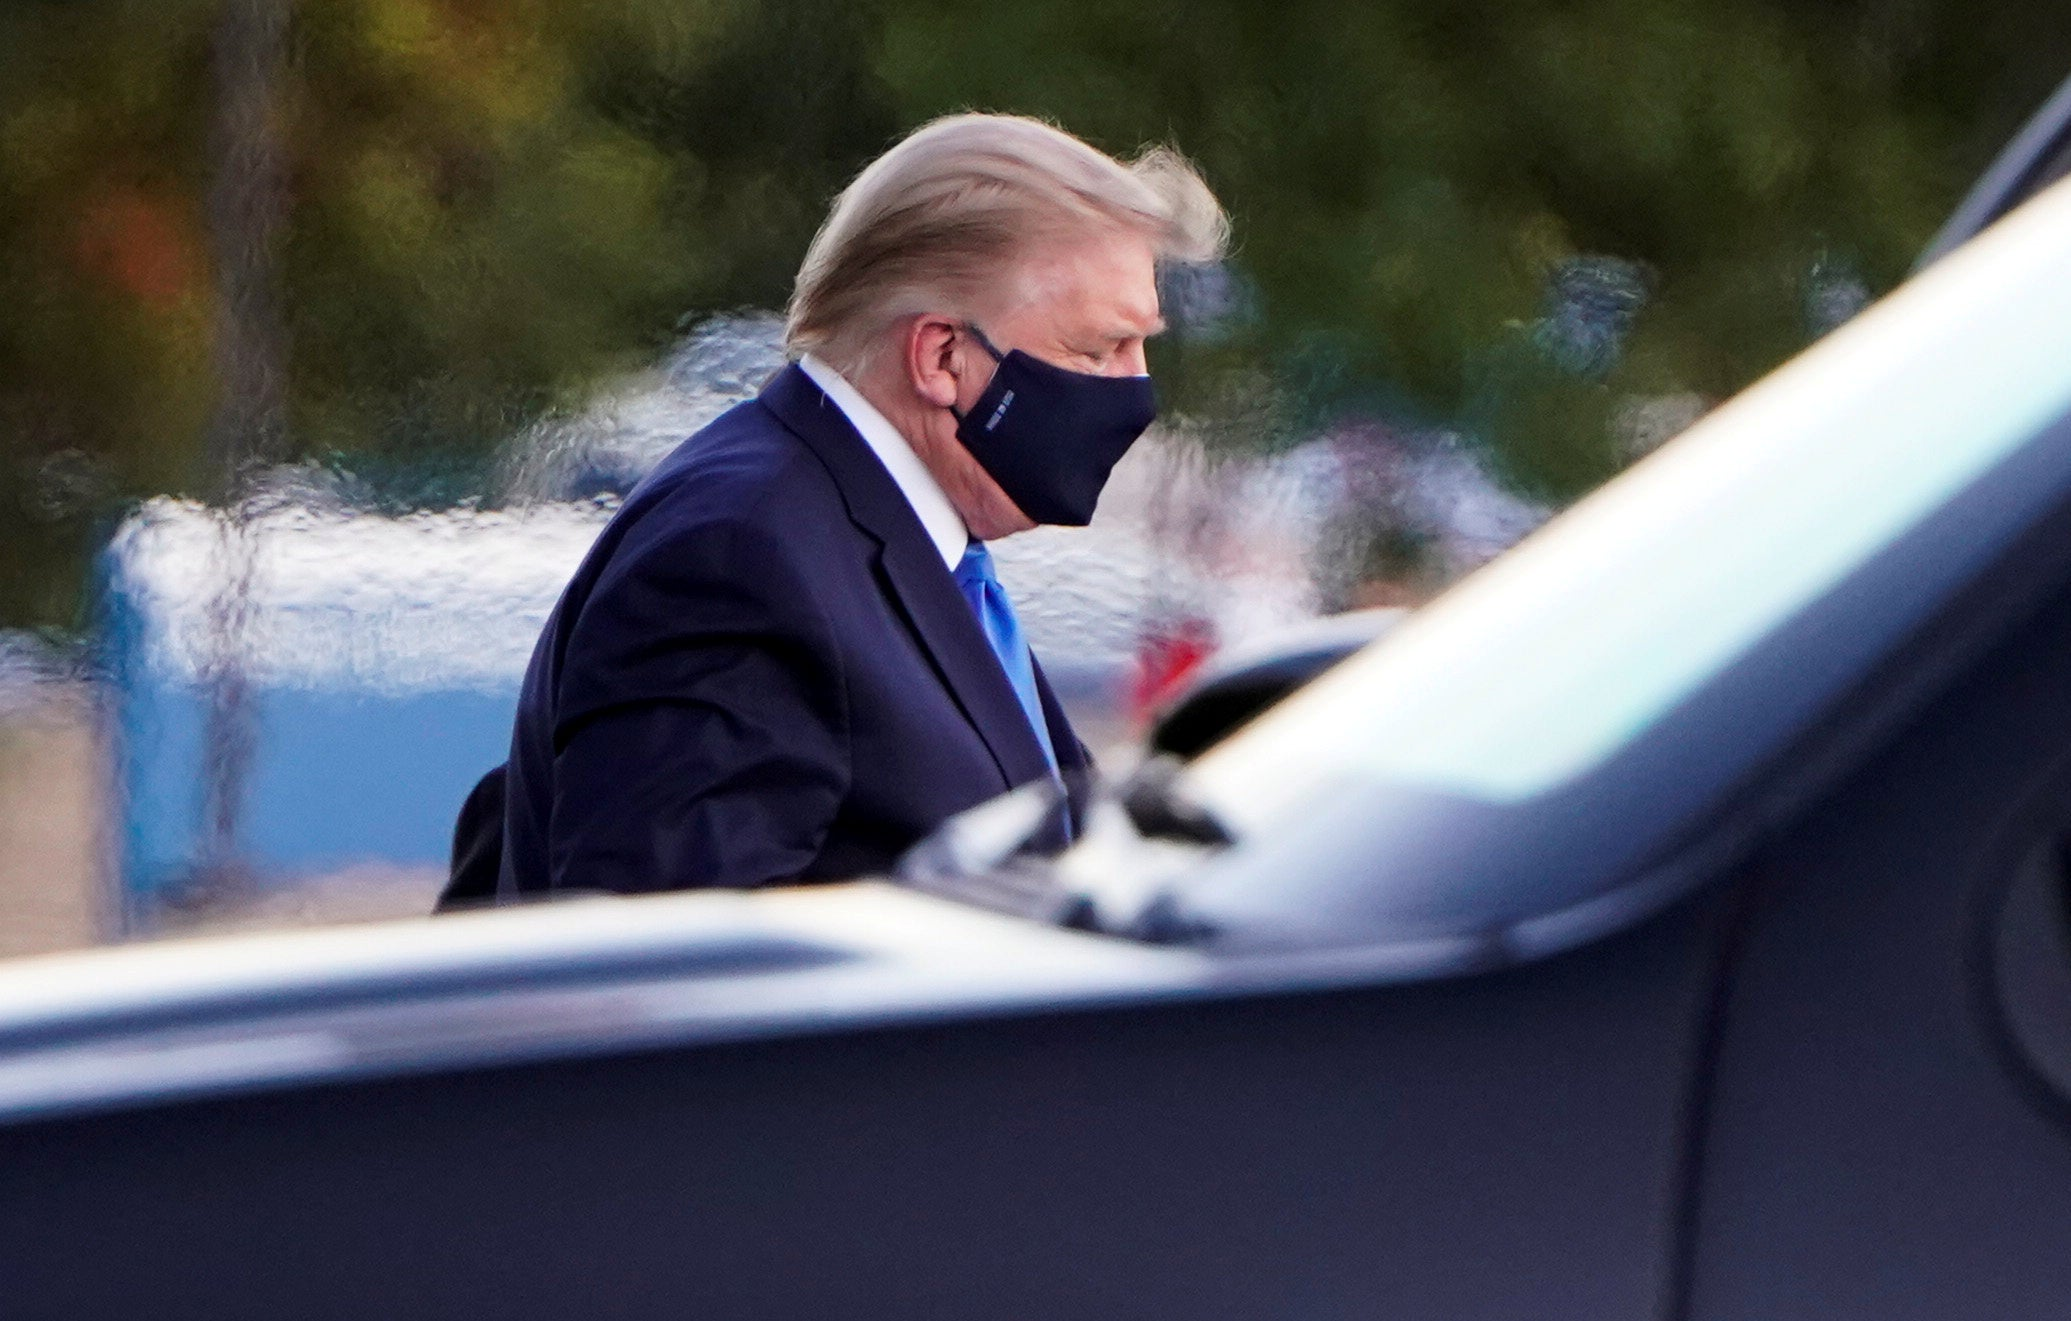 President Trump's COVID-19 symptoms are 'very concerning,' with next 48 hours 'critical' to recovery